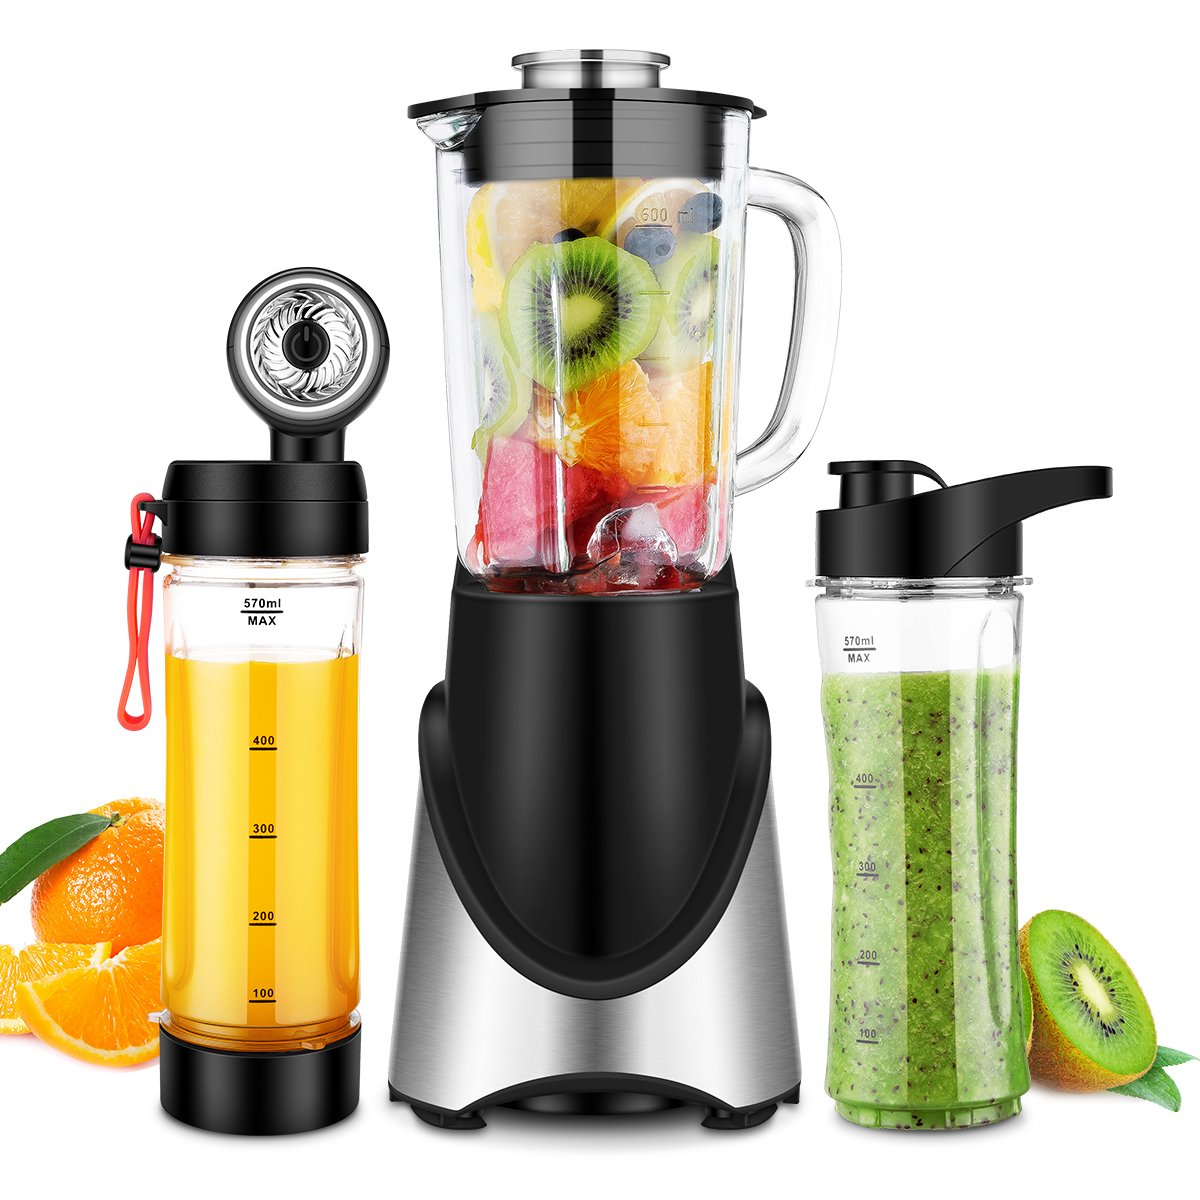 3 in 1 Personal Blender Vacuum for Frozen Fruit Ice Smoothie, 300W(24,000RMP) Powerful Motor, 6 Sharp Blades, TOBOX Portable Small Blender Single Serve with 21 oz Glass Jar & Two 20 oz Bottles, Black